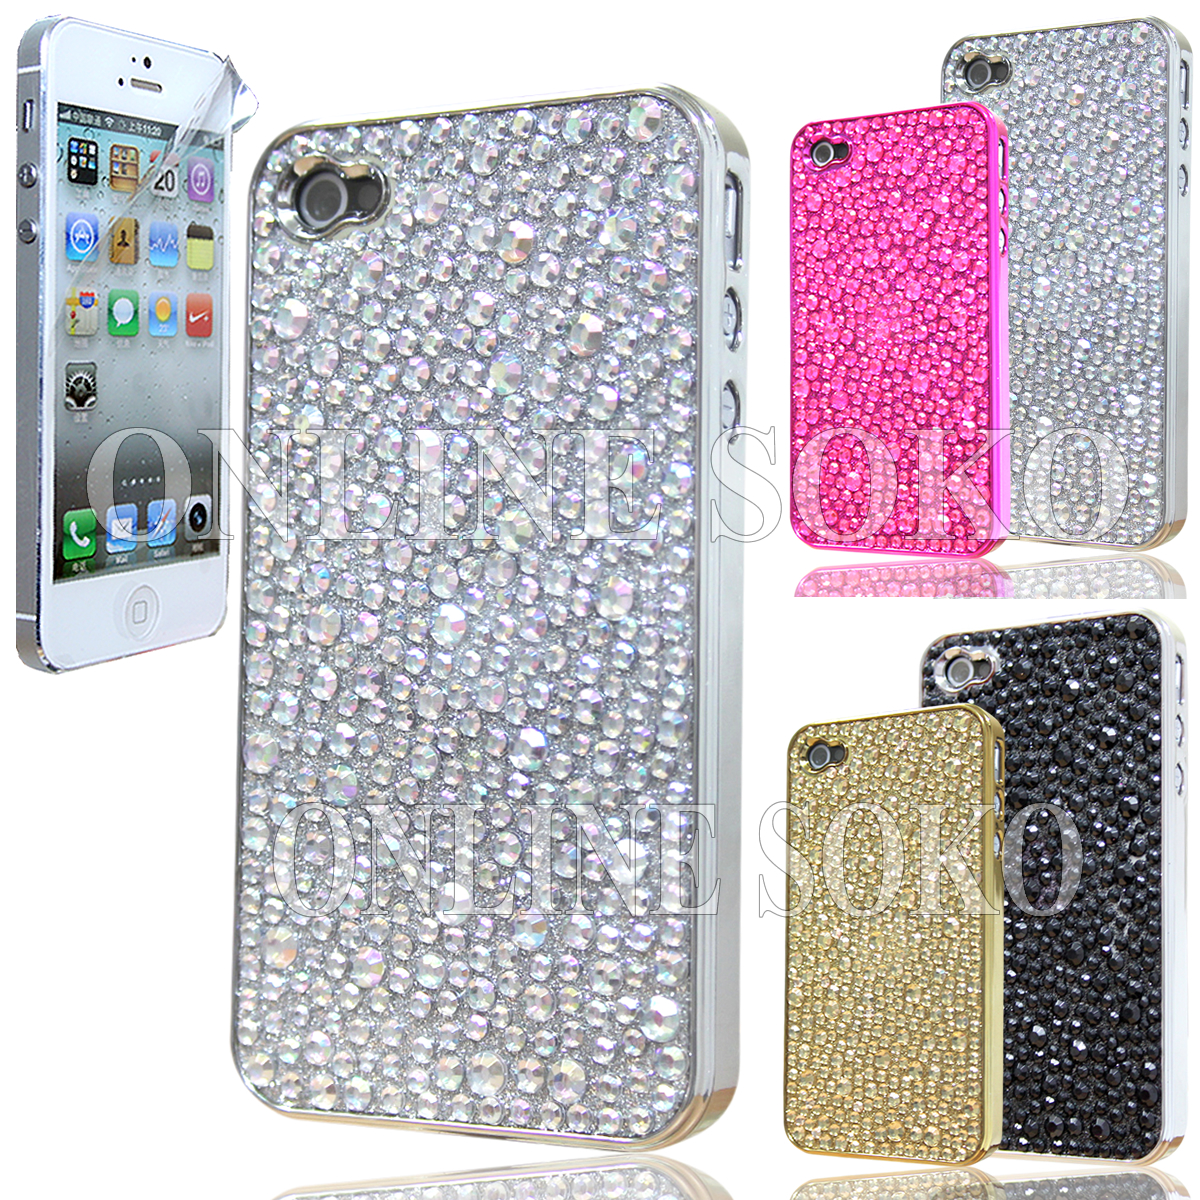 FOR APPLE iPHONE 5 CRYSTAL DIAMOND BLING CASE RHINESTONE DIAMANTE HARD COVER | eBay